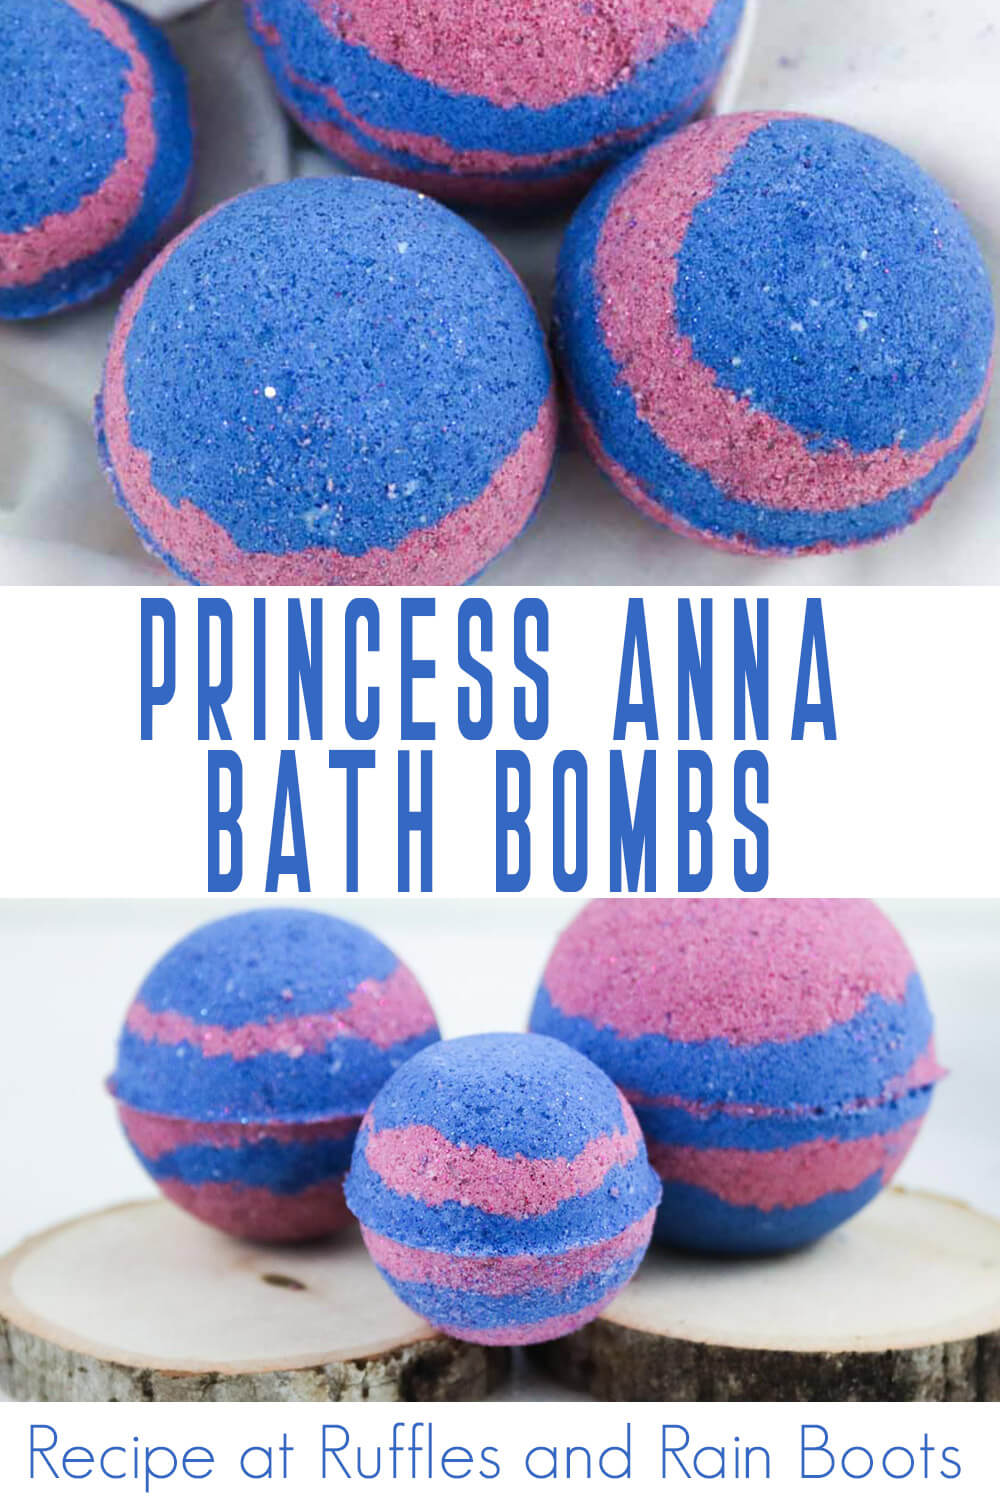 photo collage of bath bombs for kids princess anna frozen with text which reads princess anna bath bombs